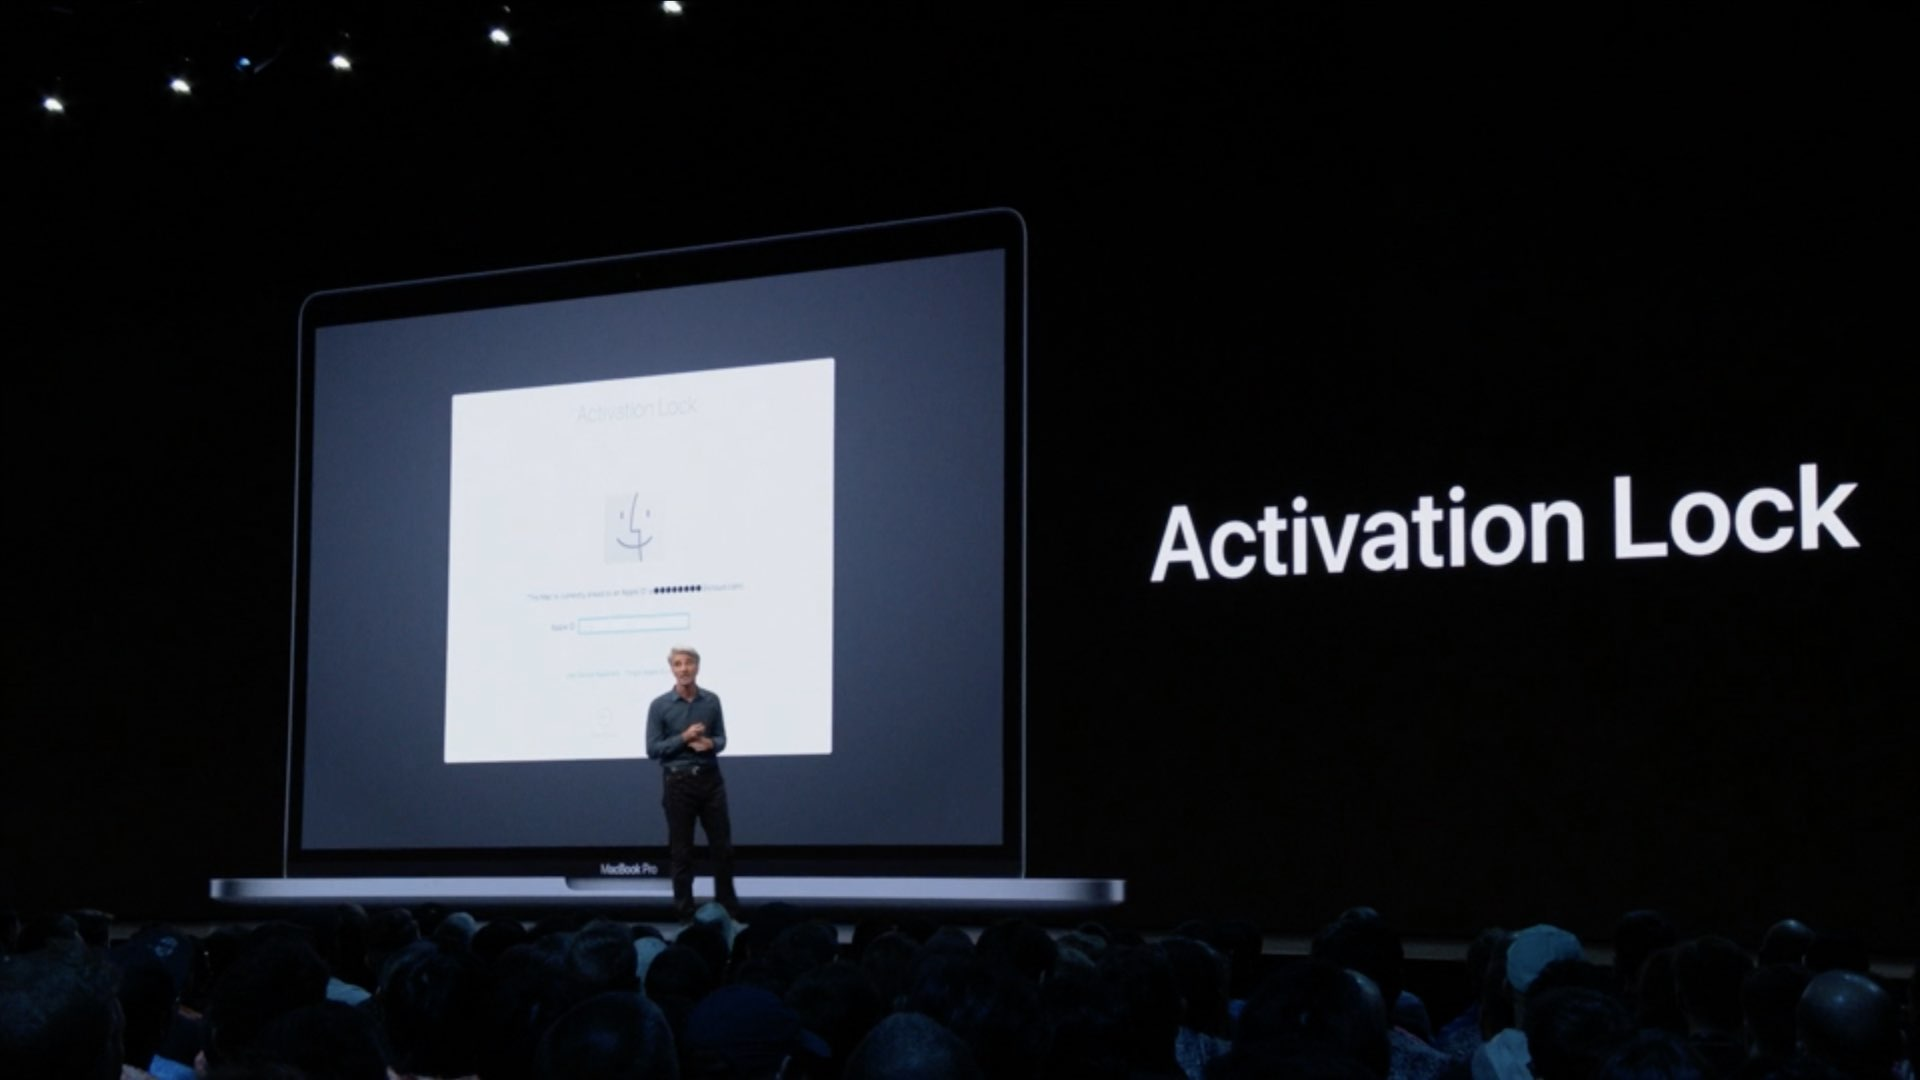 Mac Activation Lock